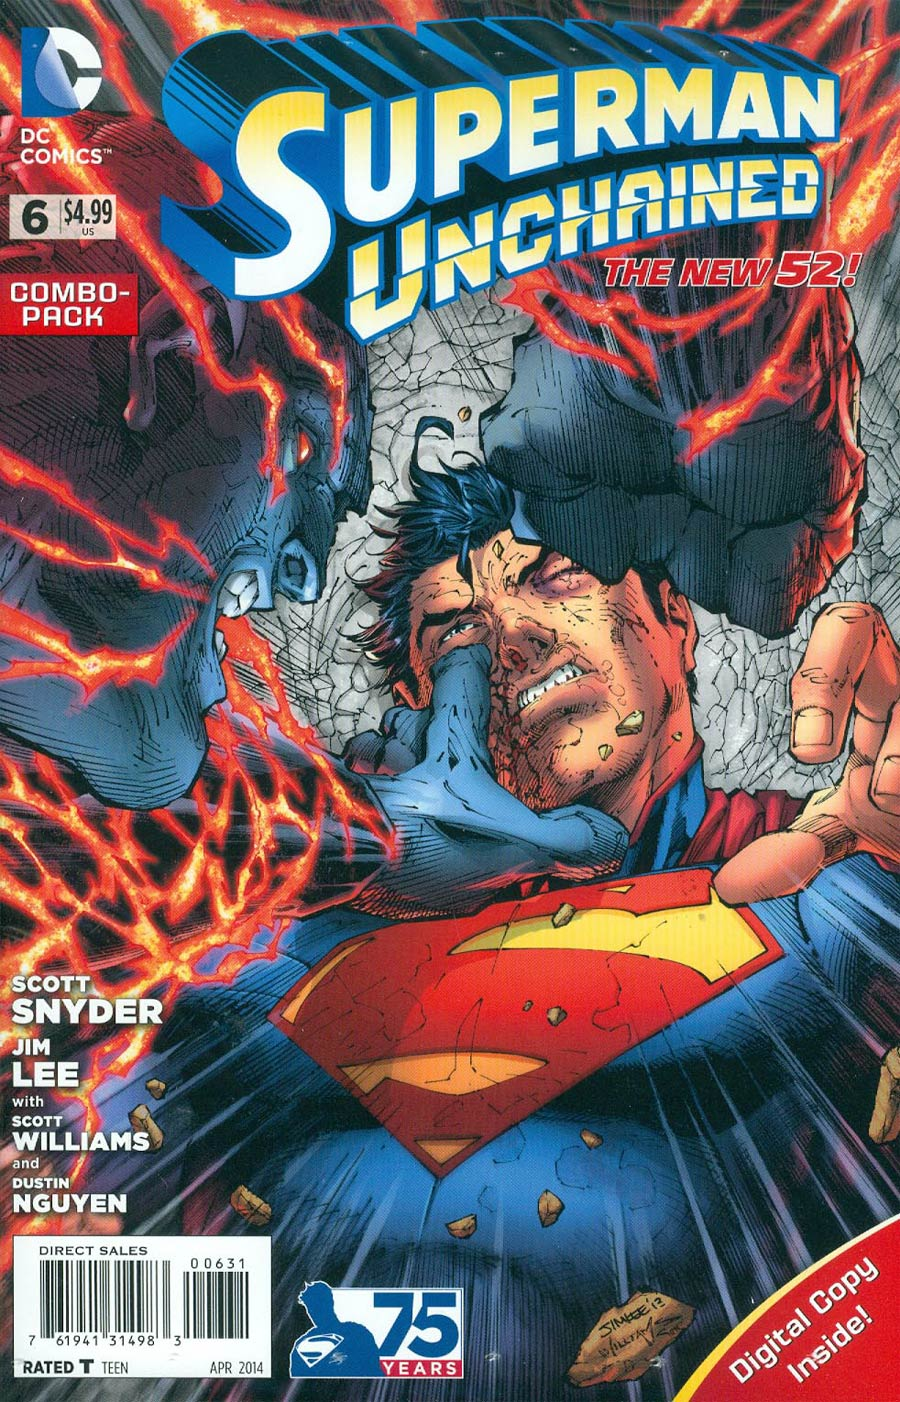 Superman Unchained #6 Cover E Combo Pack Without Polybag